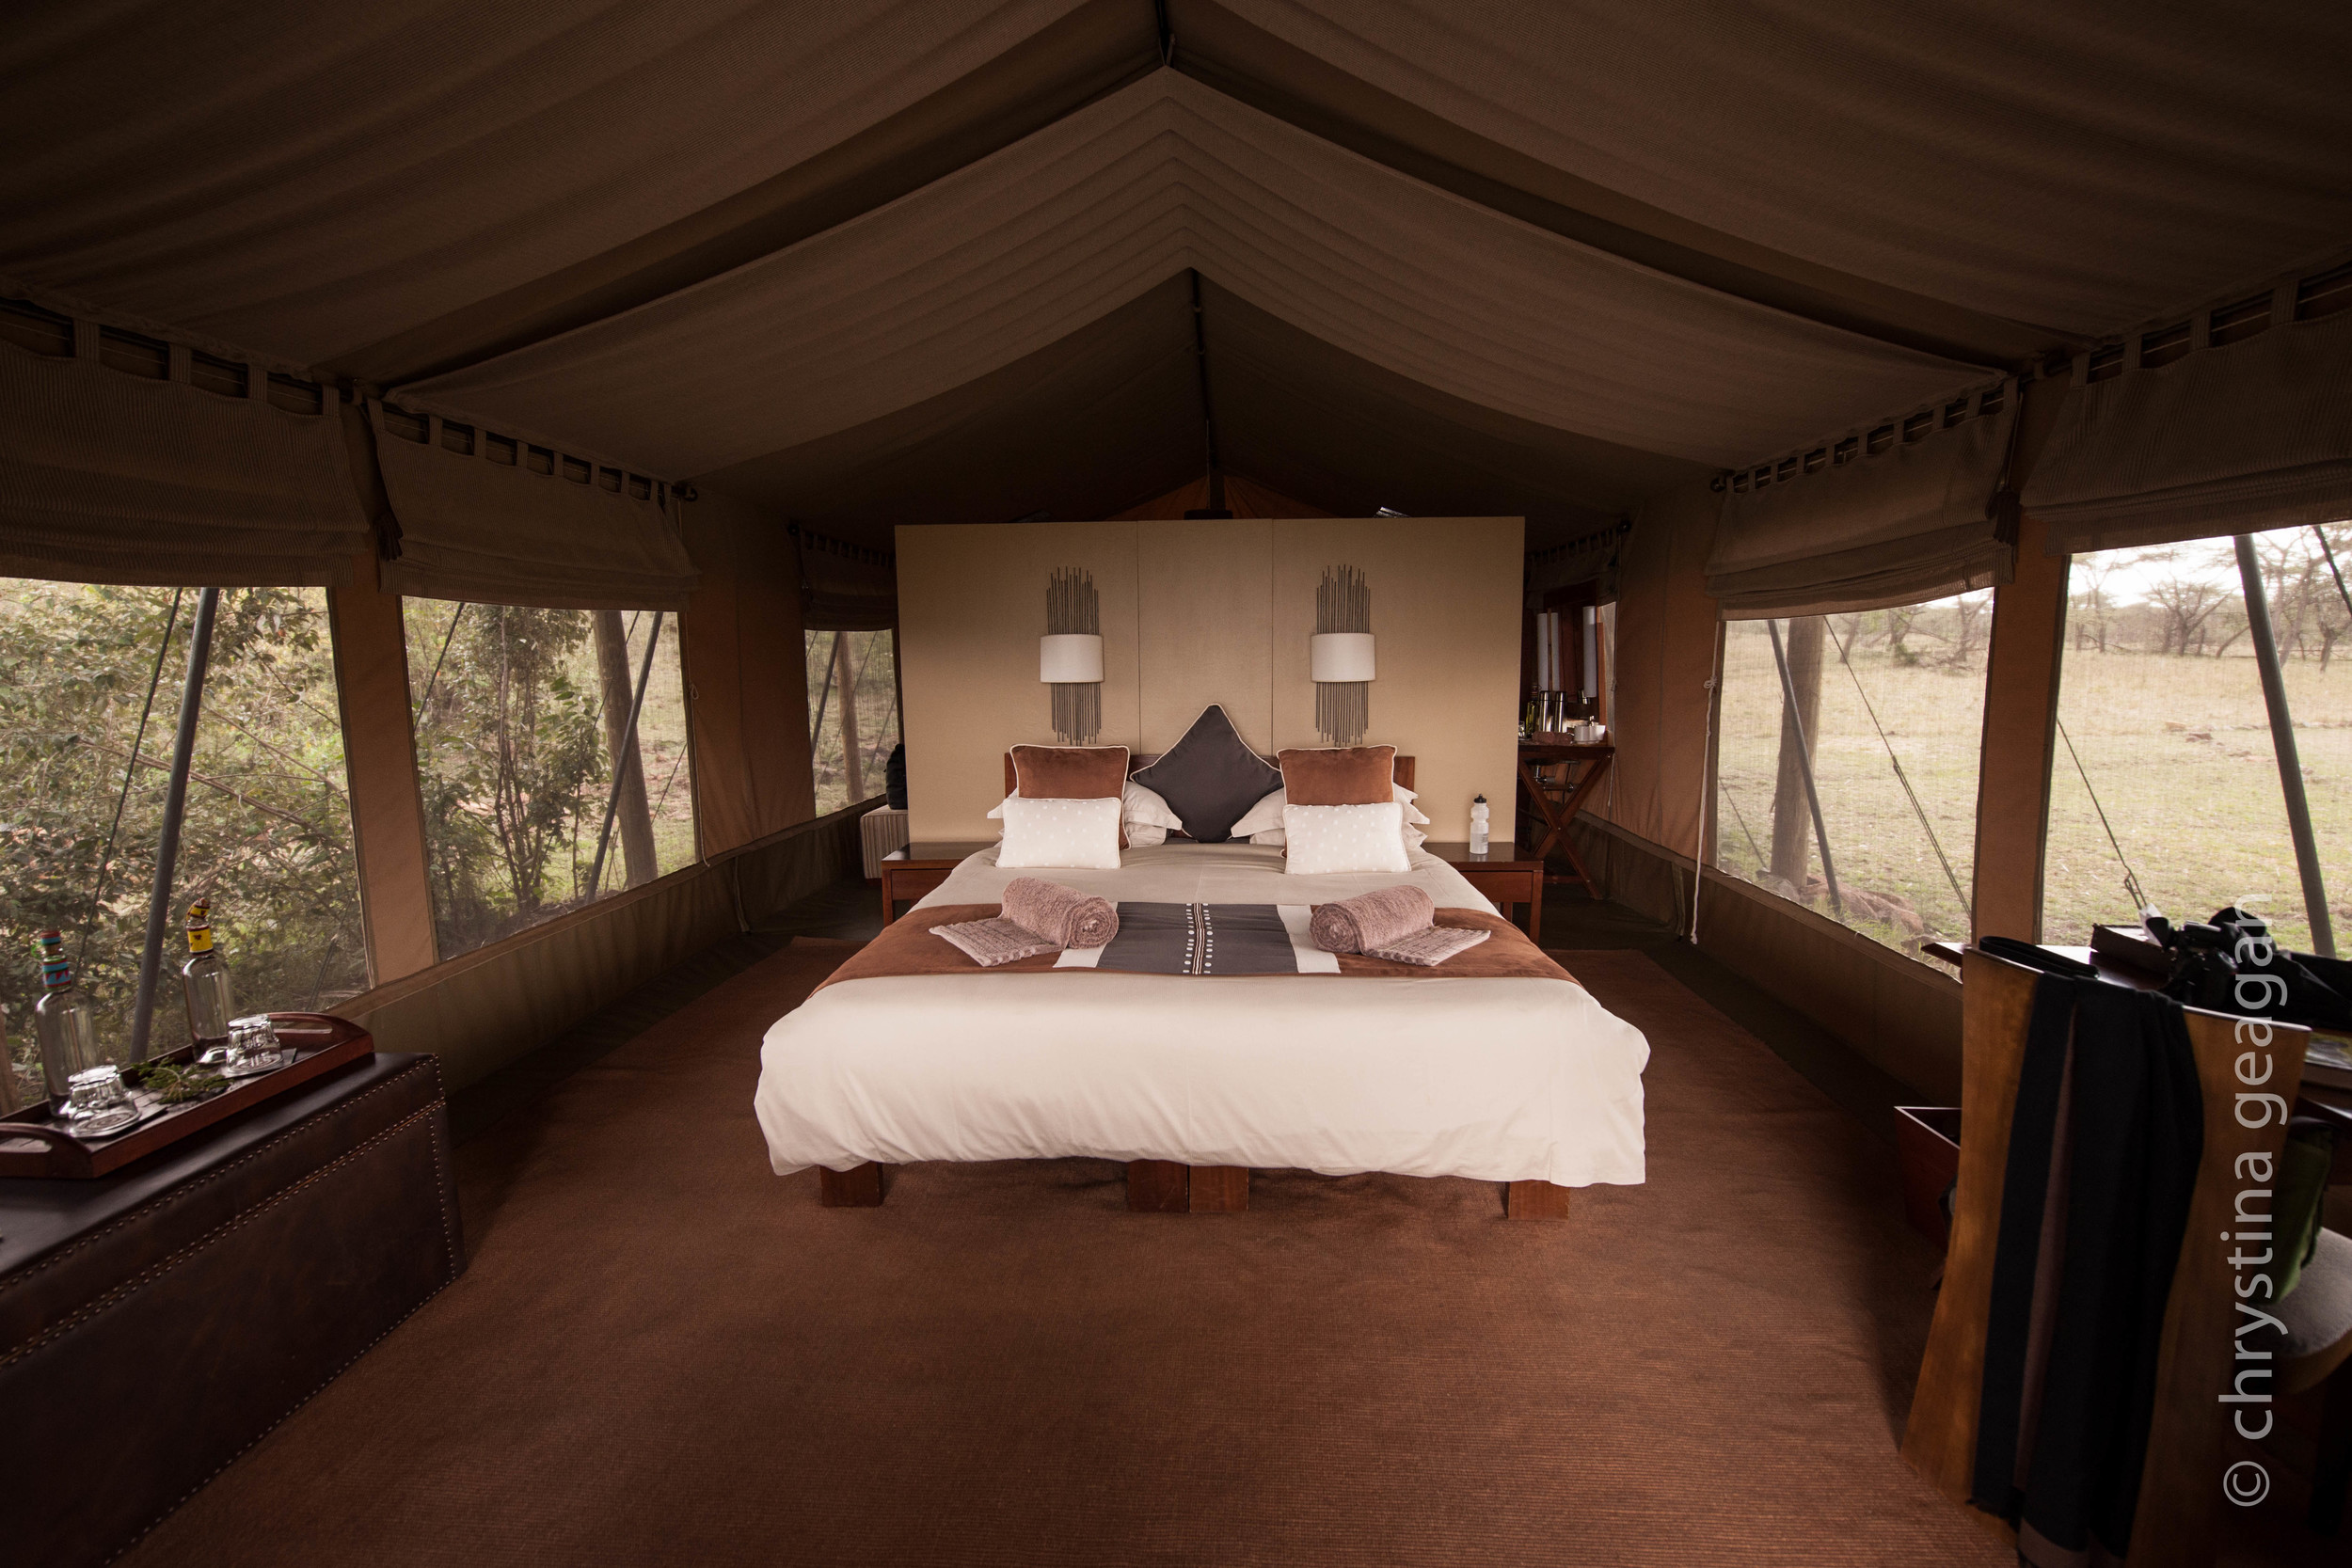 My room at Naboisho Safari Camp, Masai Mara, Kenya - Lions were in that window where the bushes are!